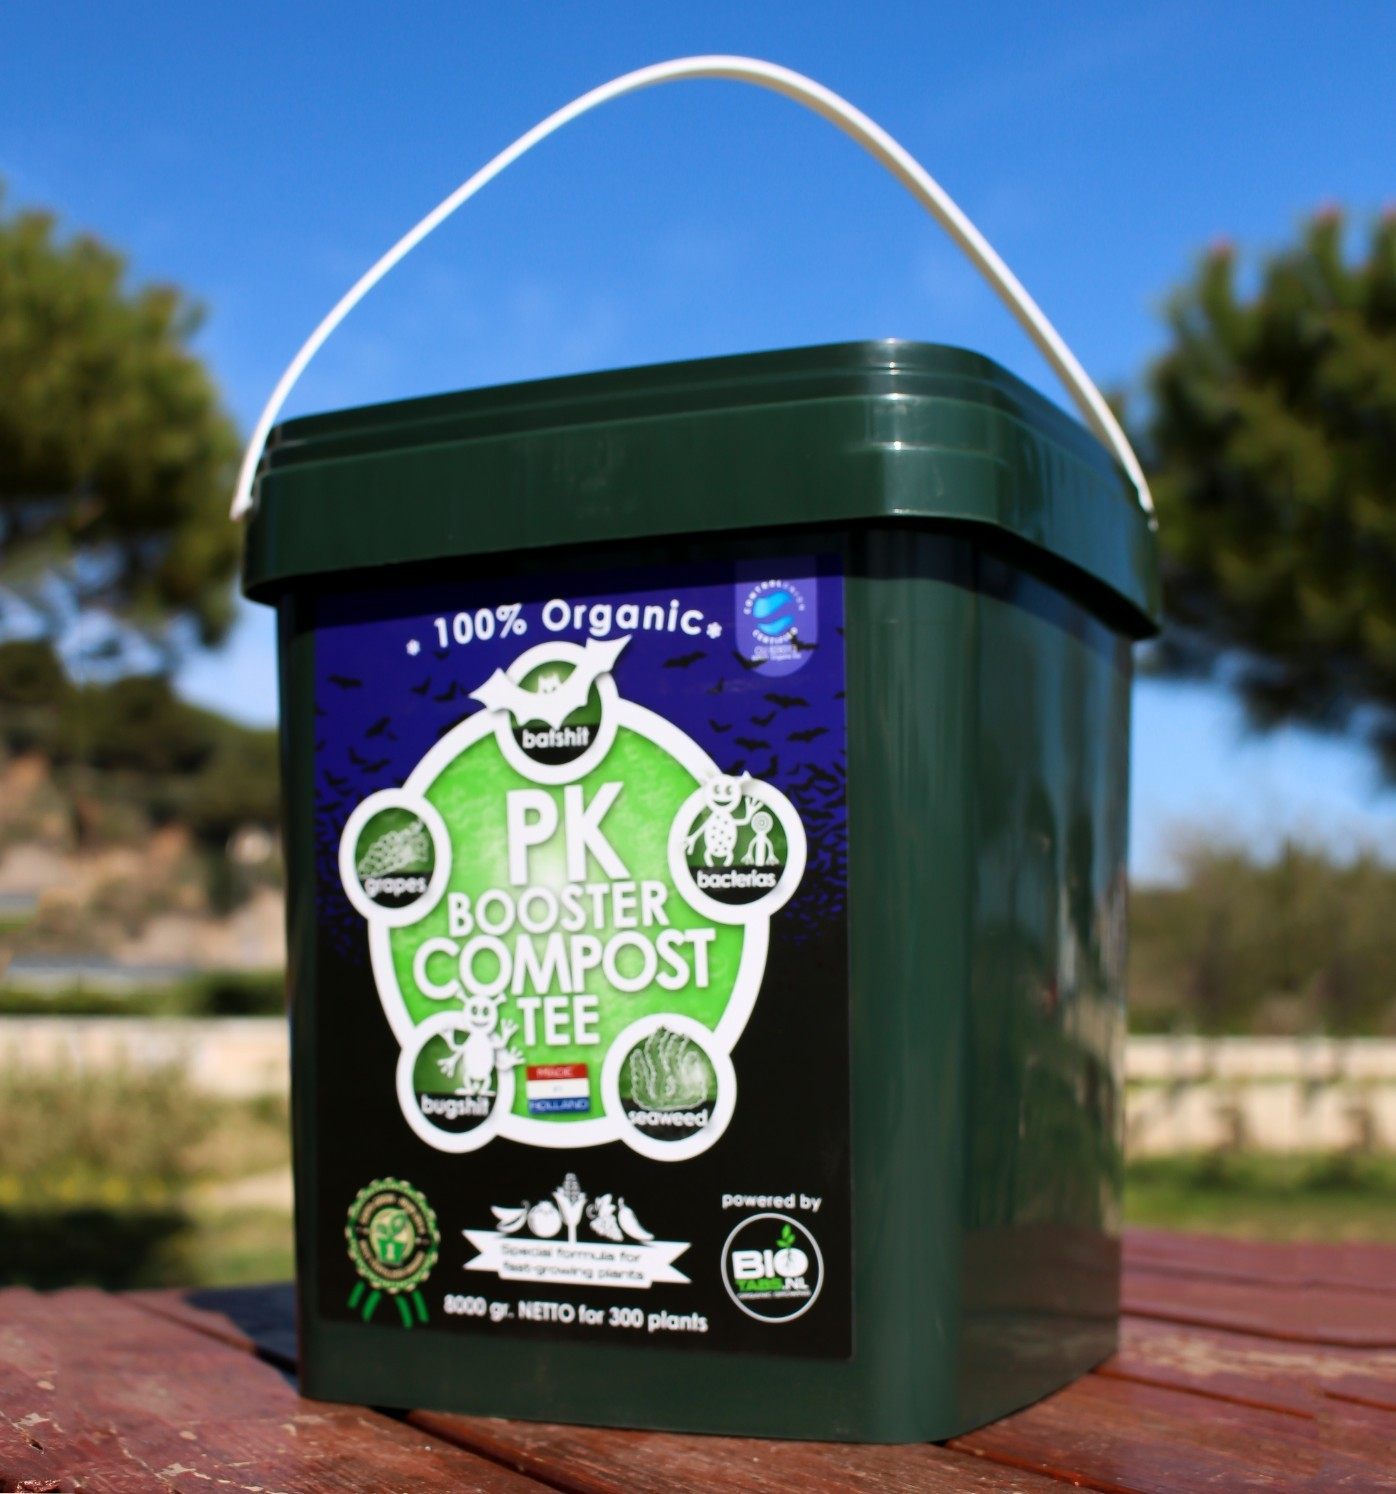 Biotabs PK Booster Compost Tea 9000ml